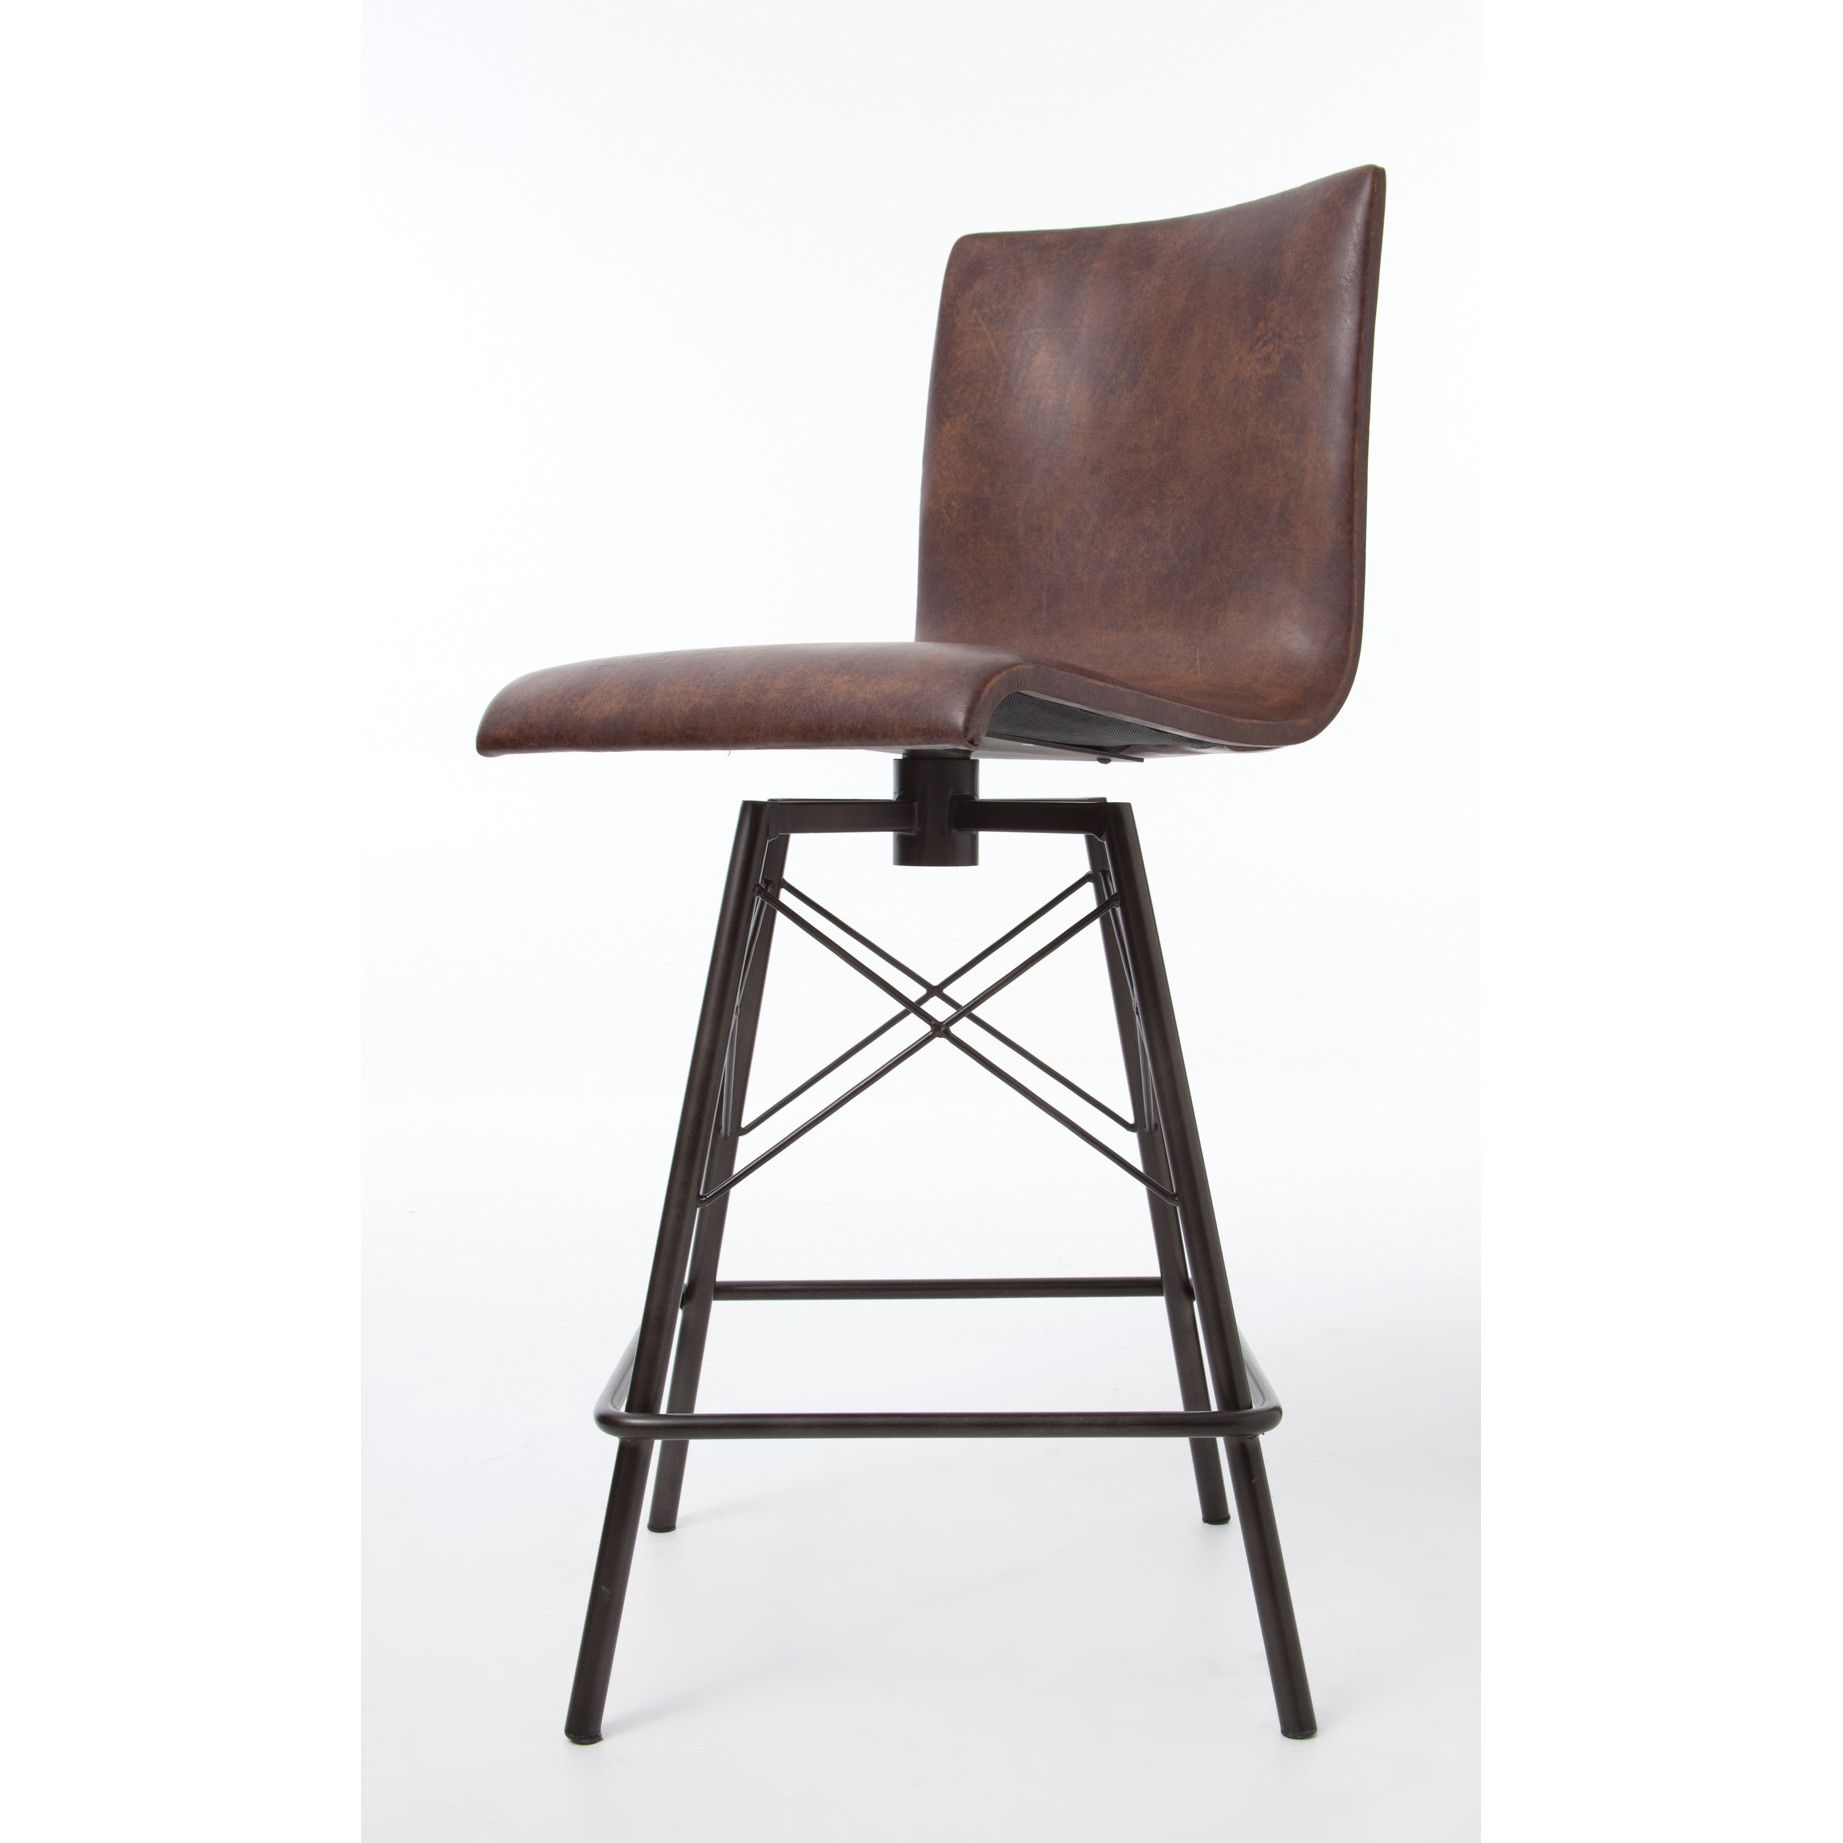 dcor design diaw bar stool  new house  pinterest  living room  - dcor design diaw bar stool